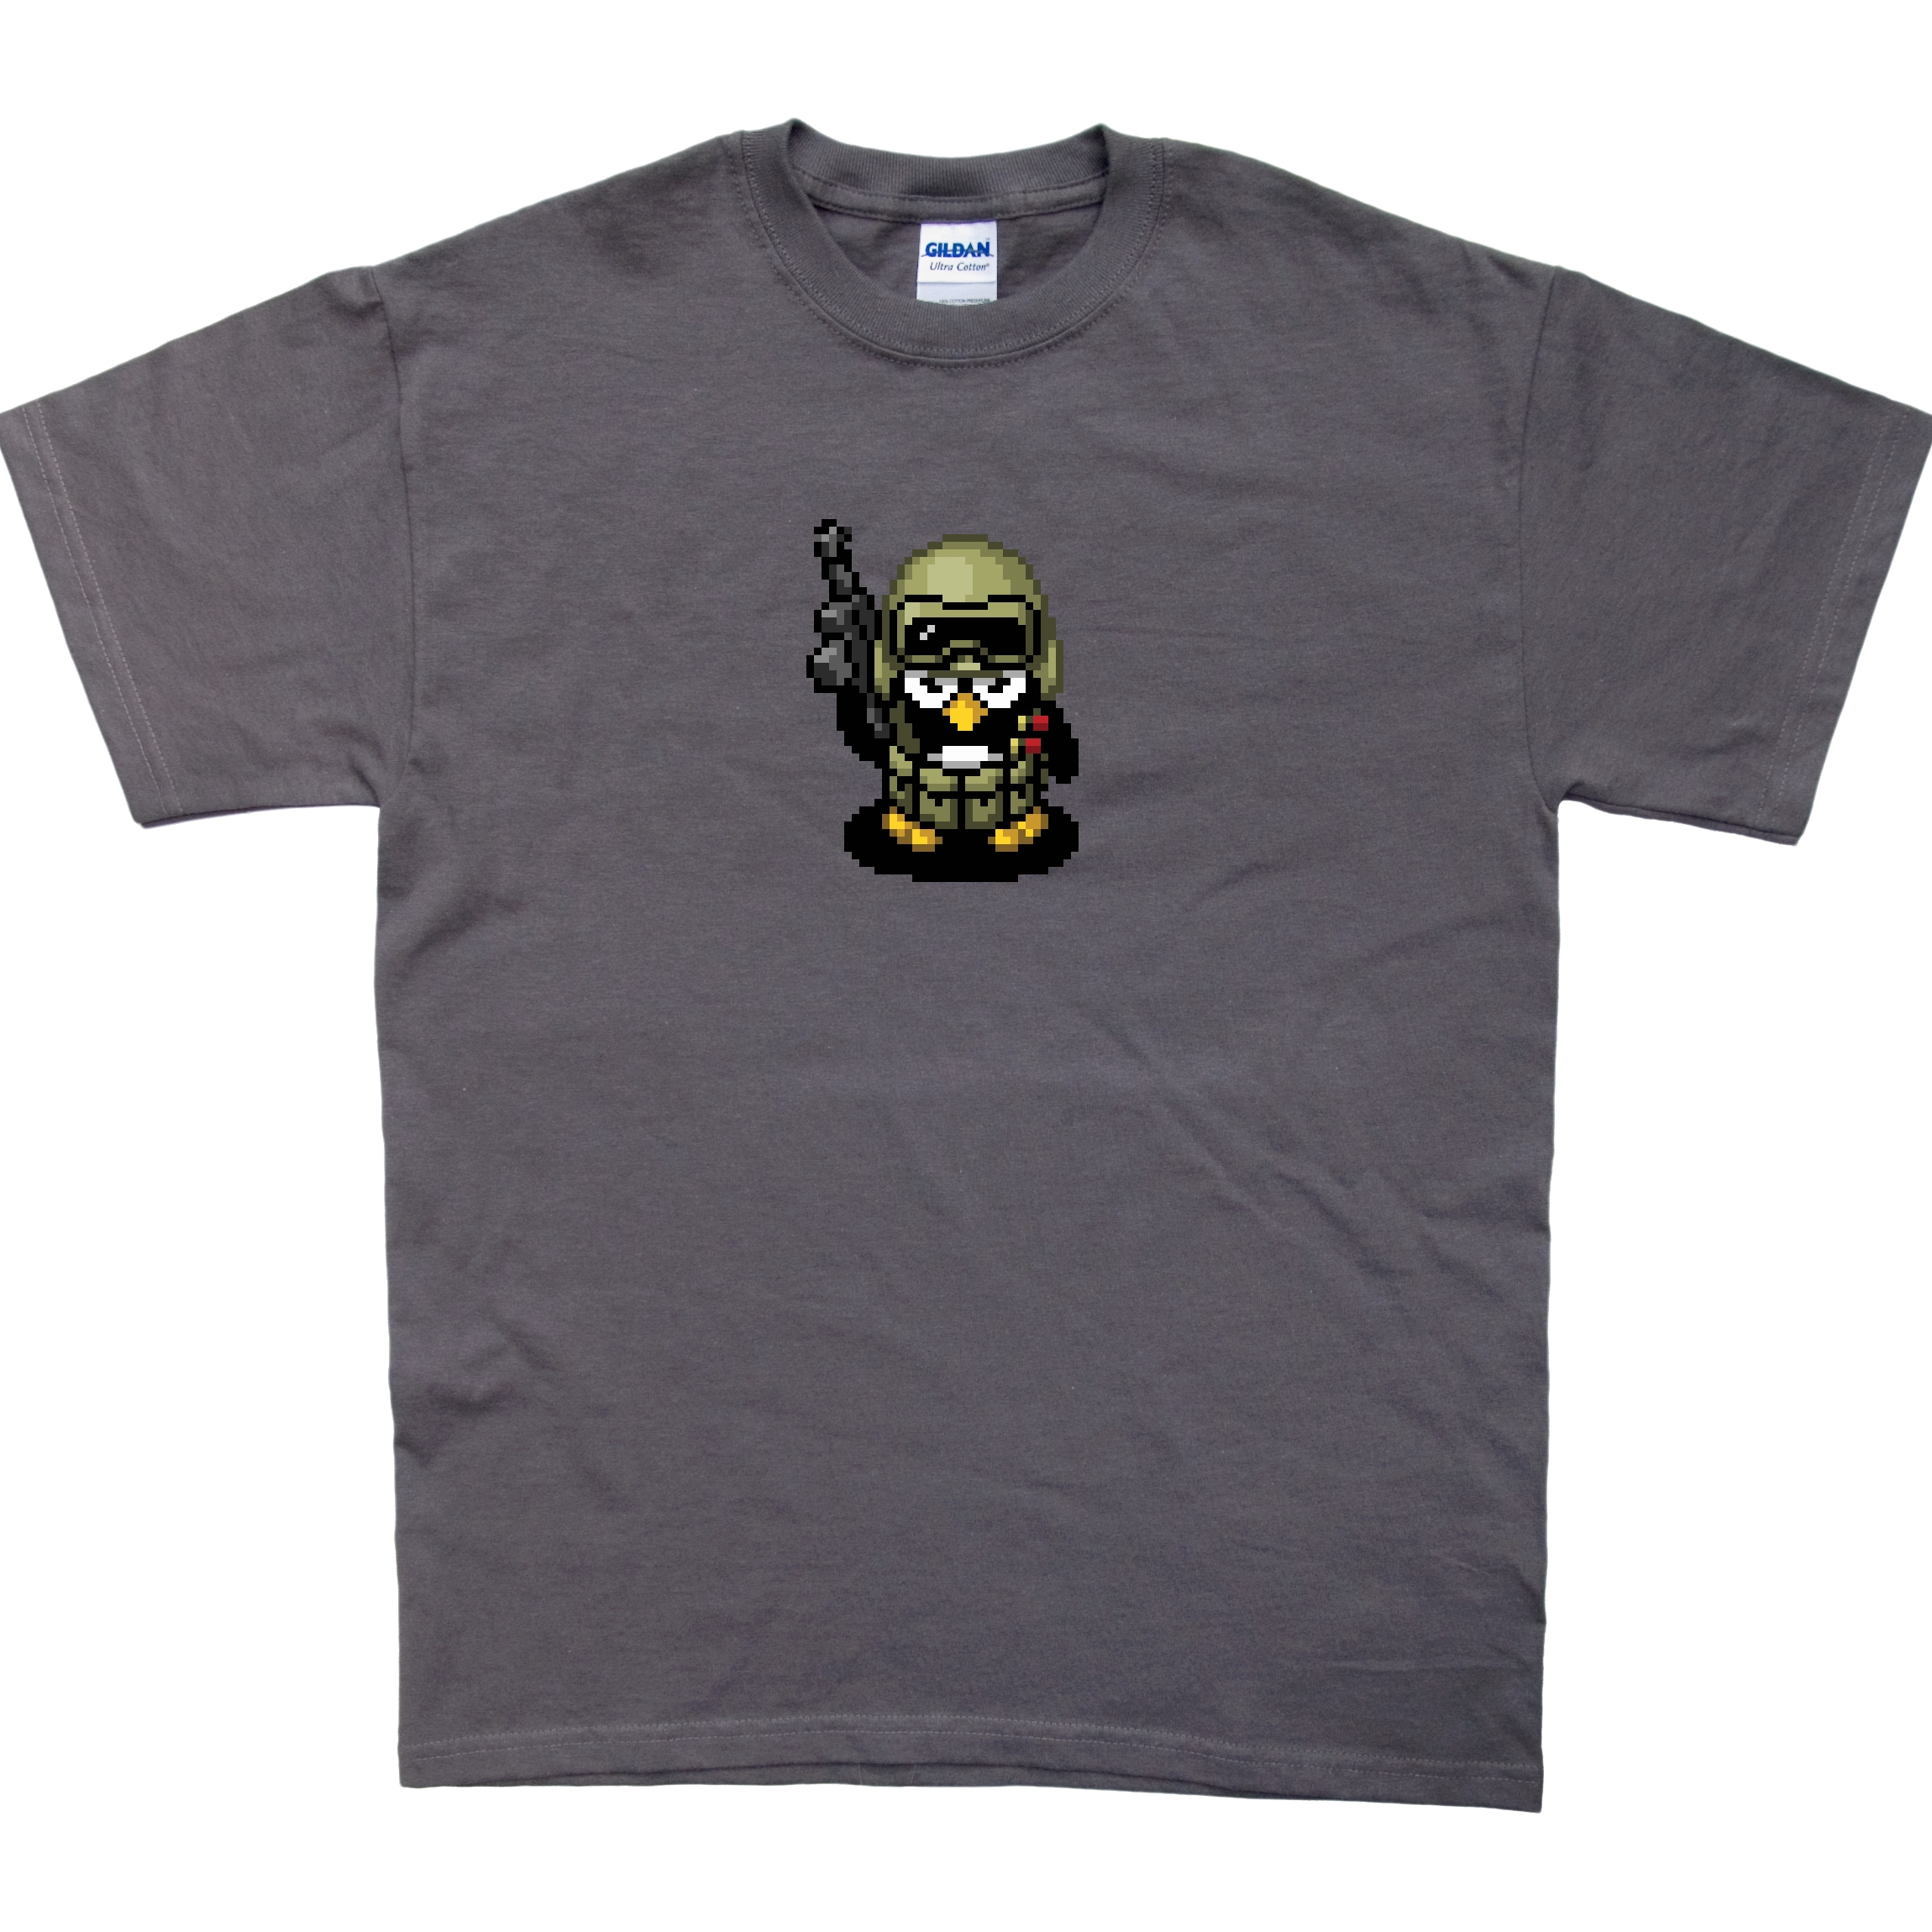 Photograph: Penguin Soldier T-Shirt